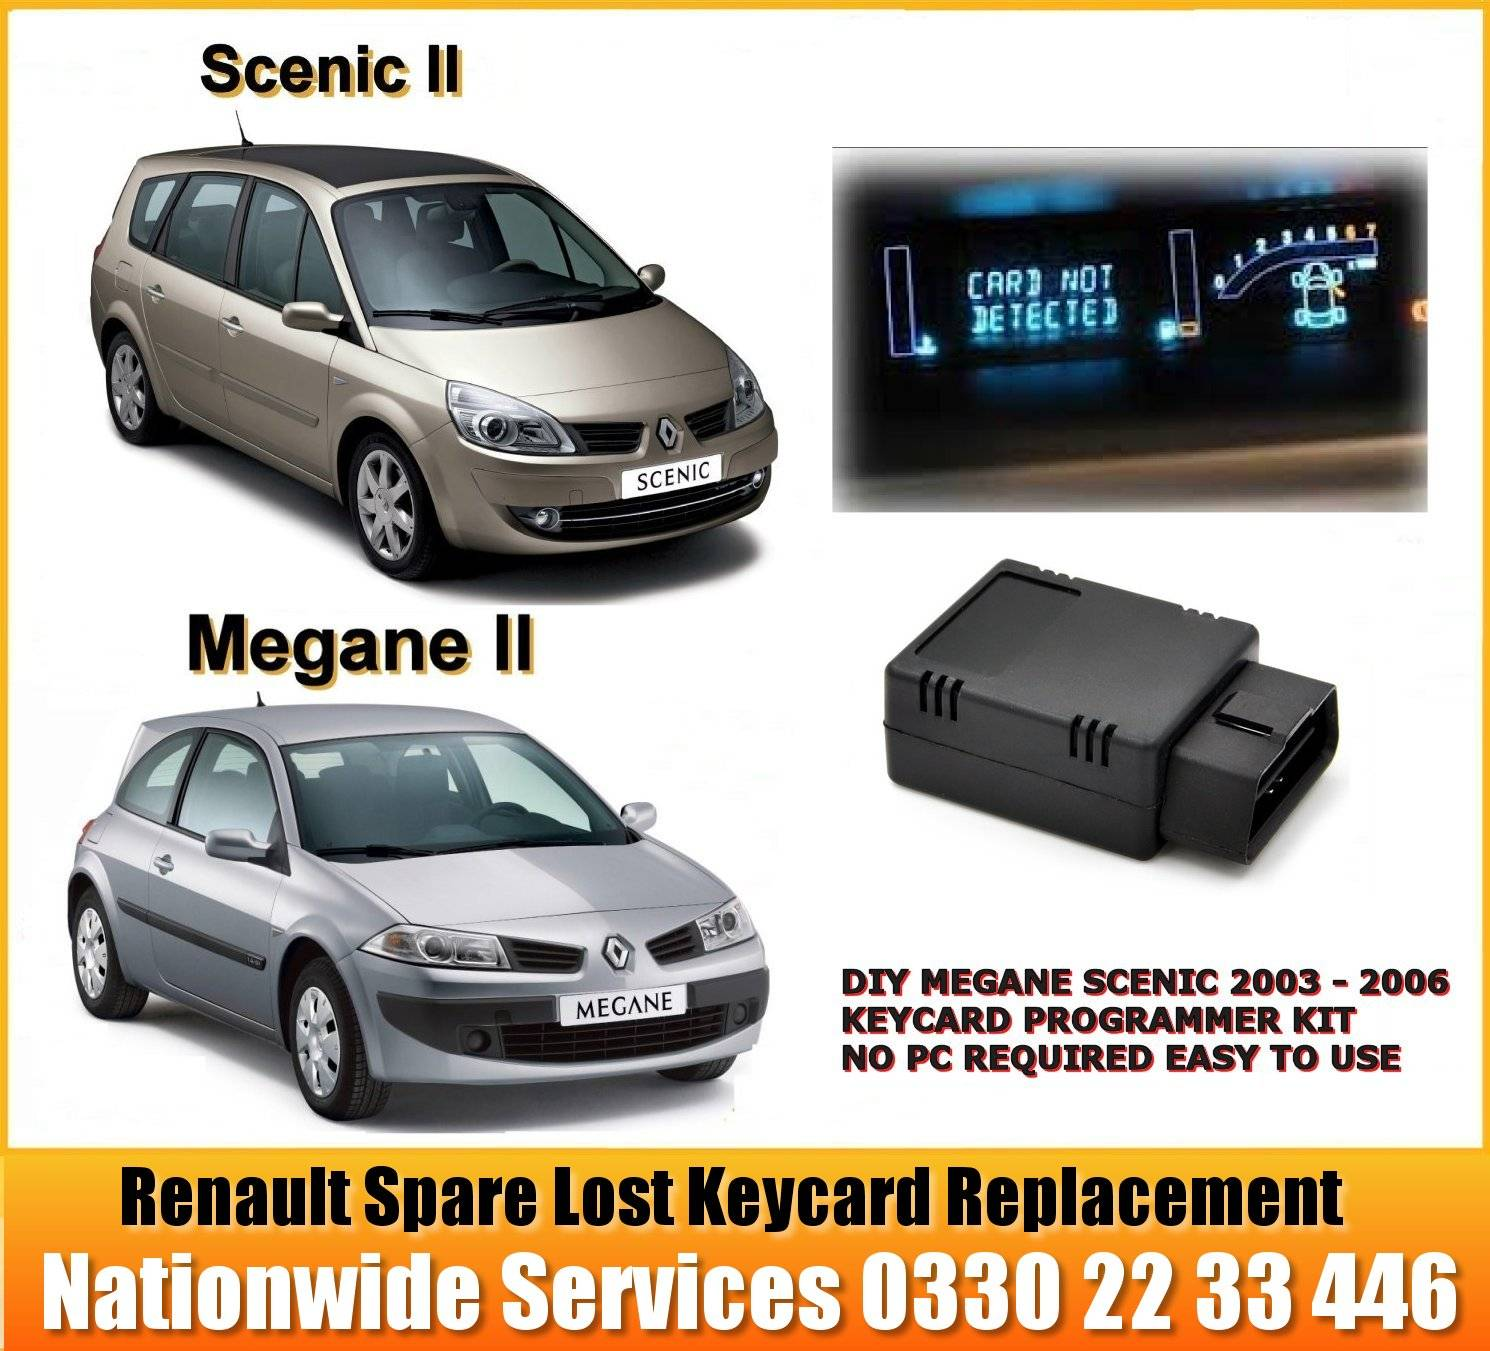 DIY_MEGANE_SCENIC_2003_-_2006_KEYCARD_PROGRAMMER_KIT_NO_PC_REQUIRED_PROGRAMMING